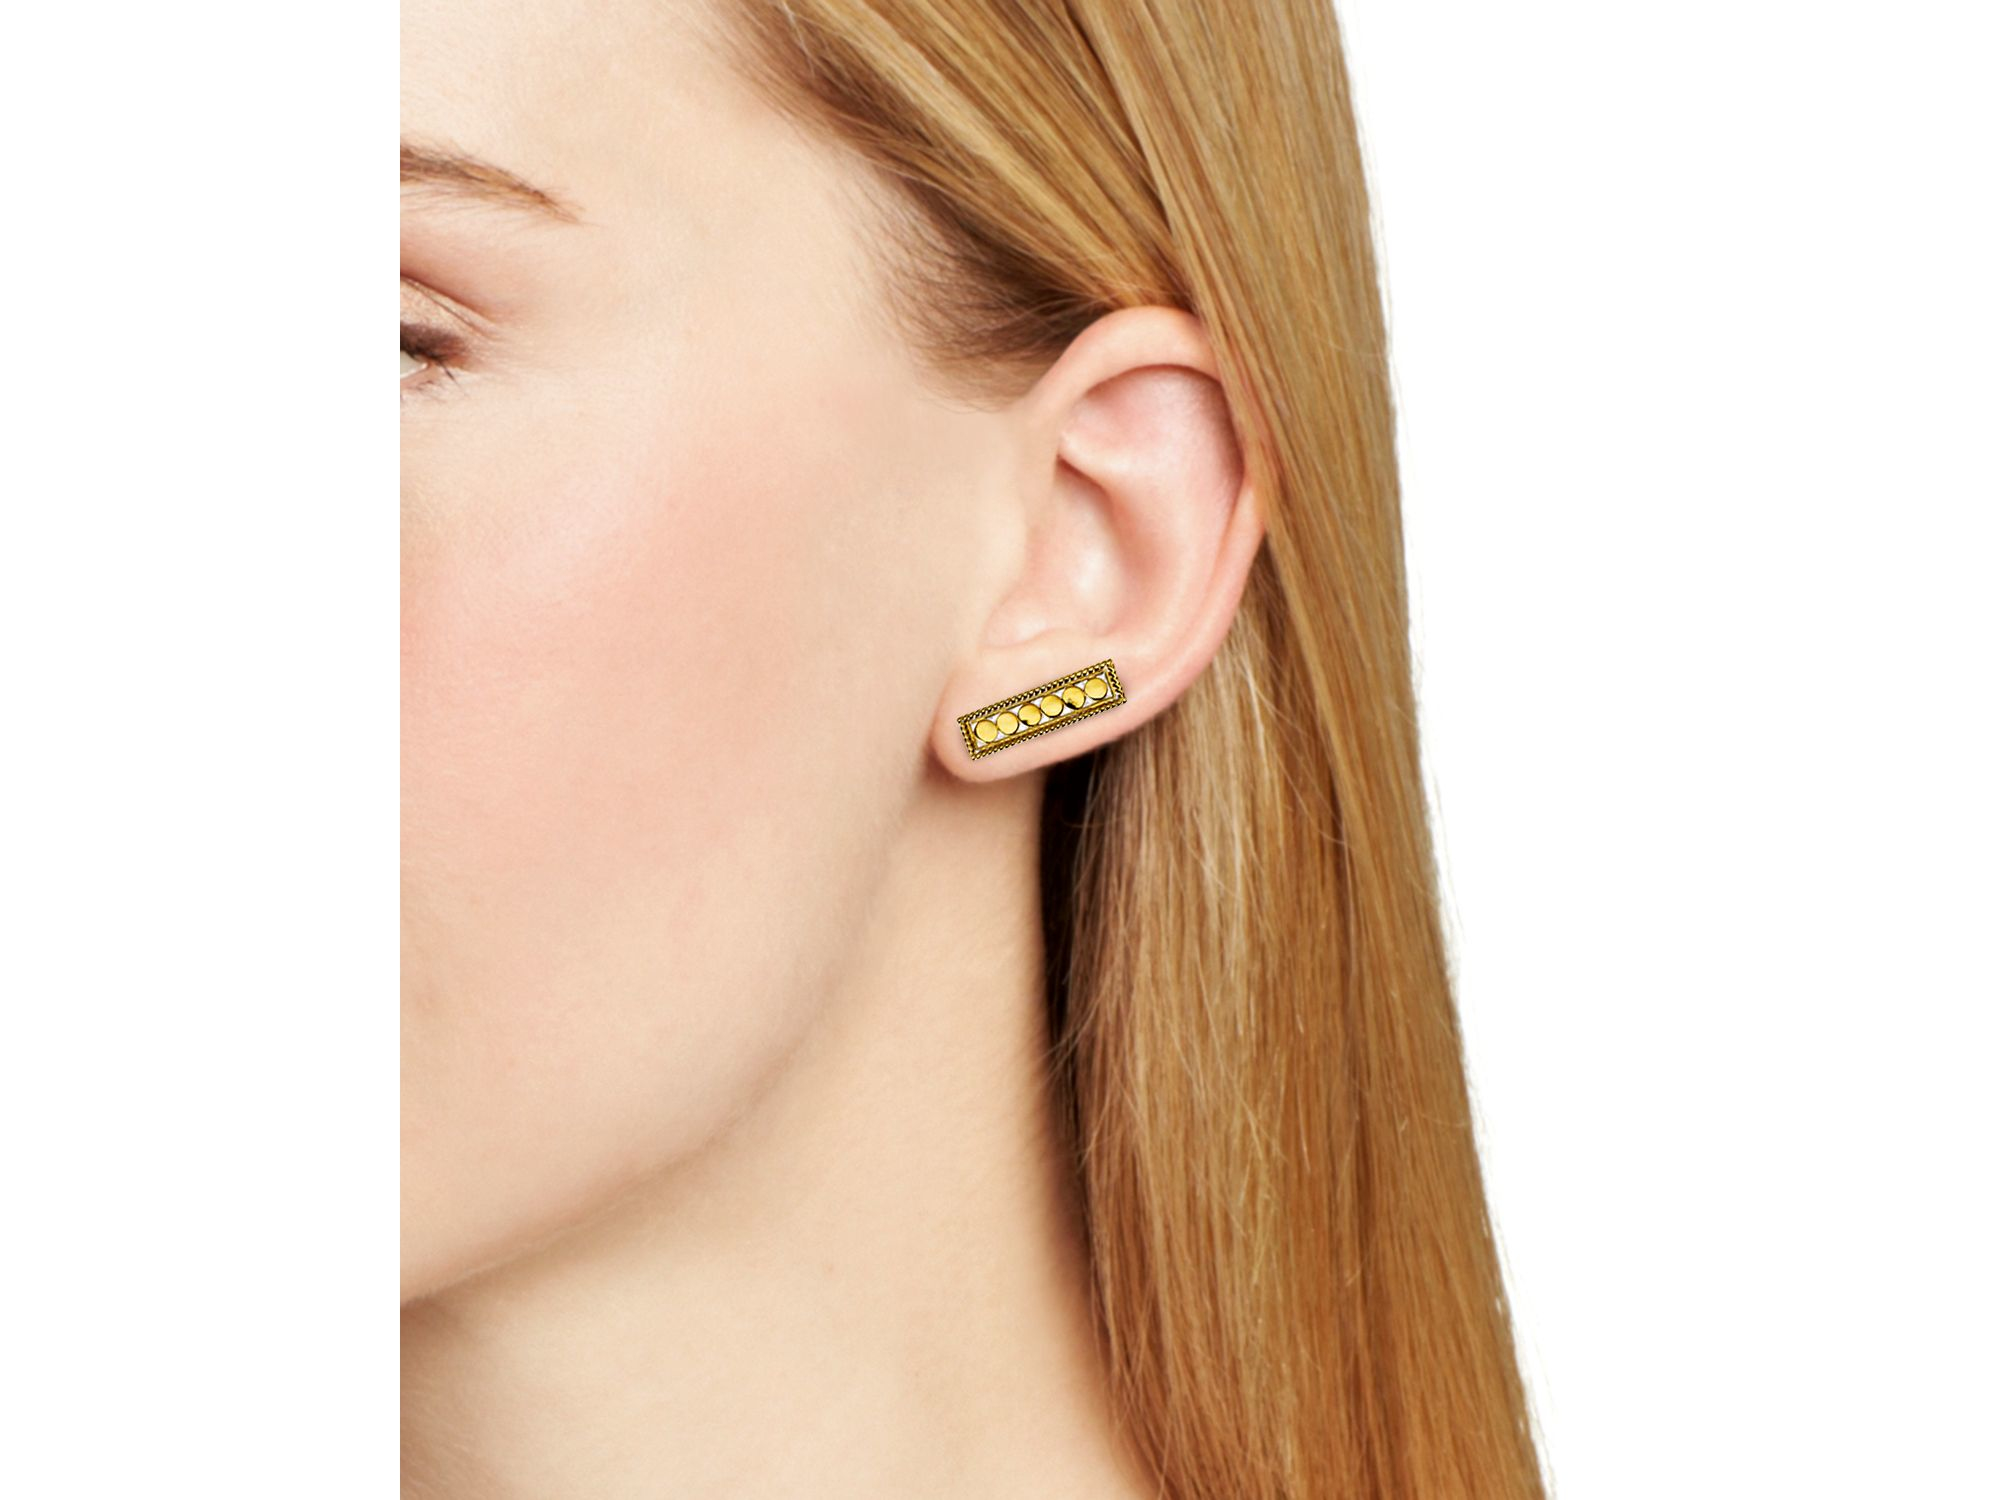 gold rsp at johnlewis pdp nina earrings lewis bar b john buynina com online main stud